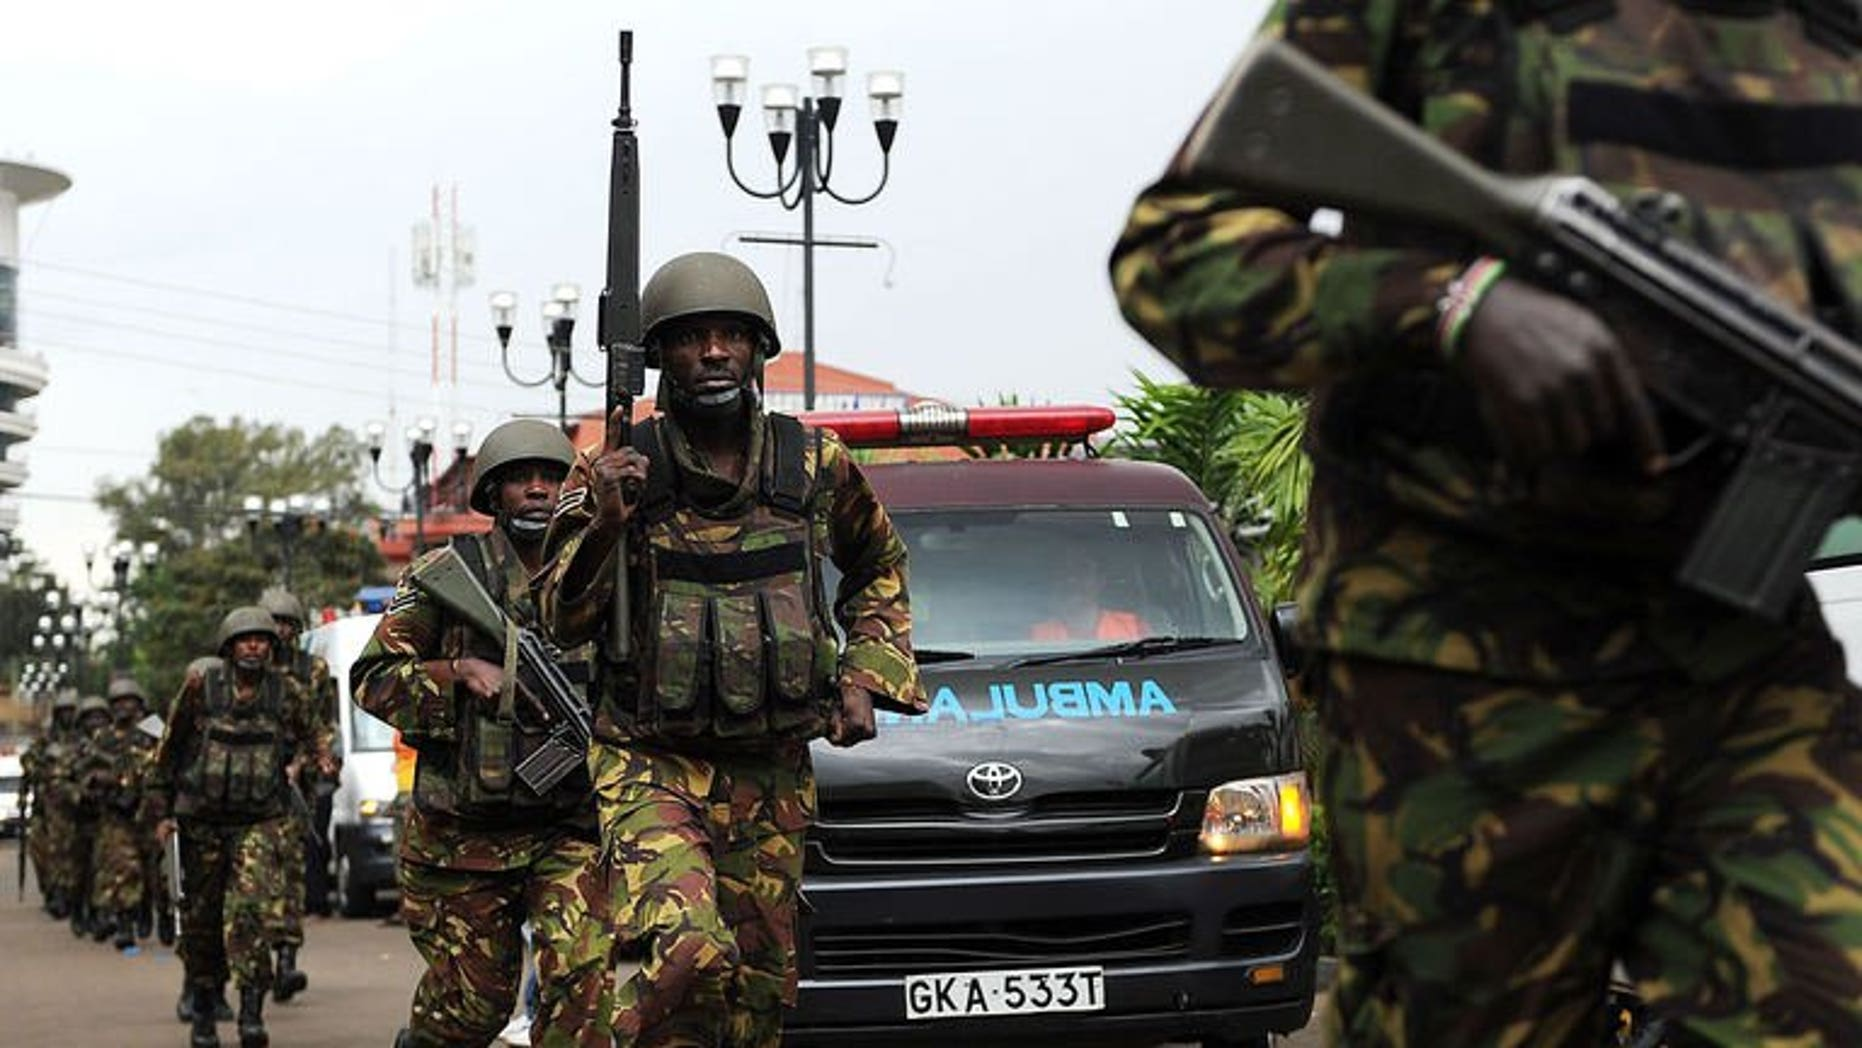 Military personel mobilise on September 21, 2013 outside an upmarket shopping mall in Nairobi.